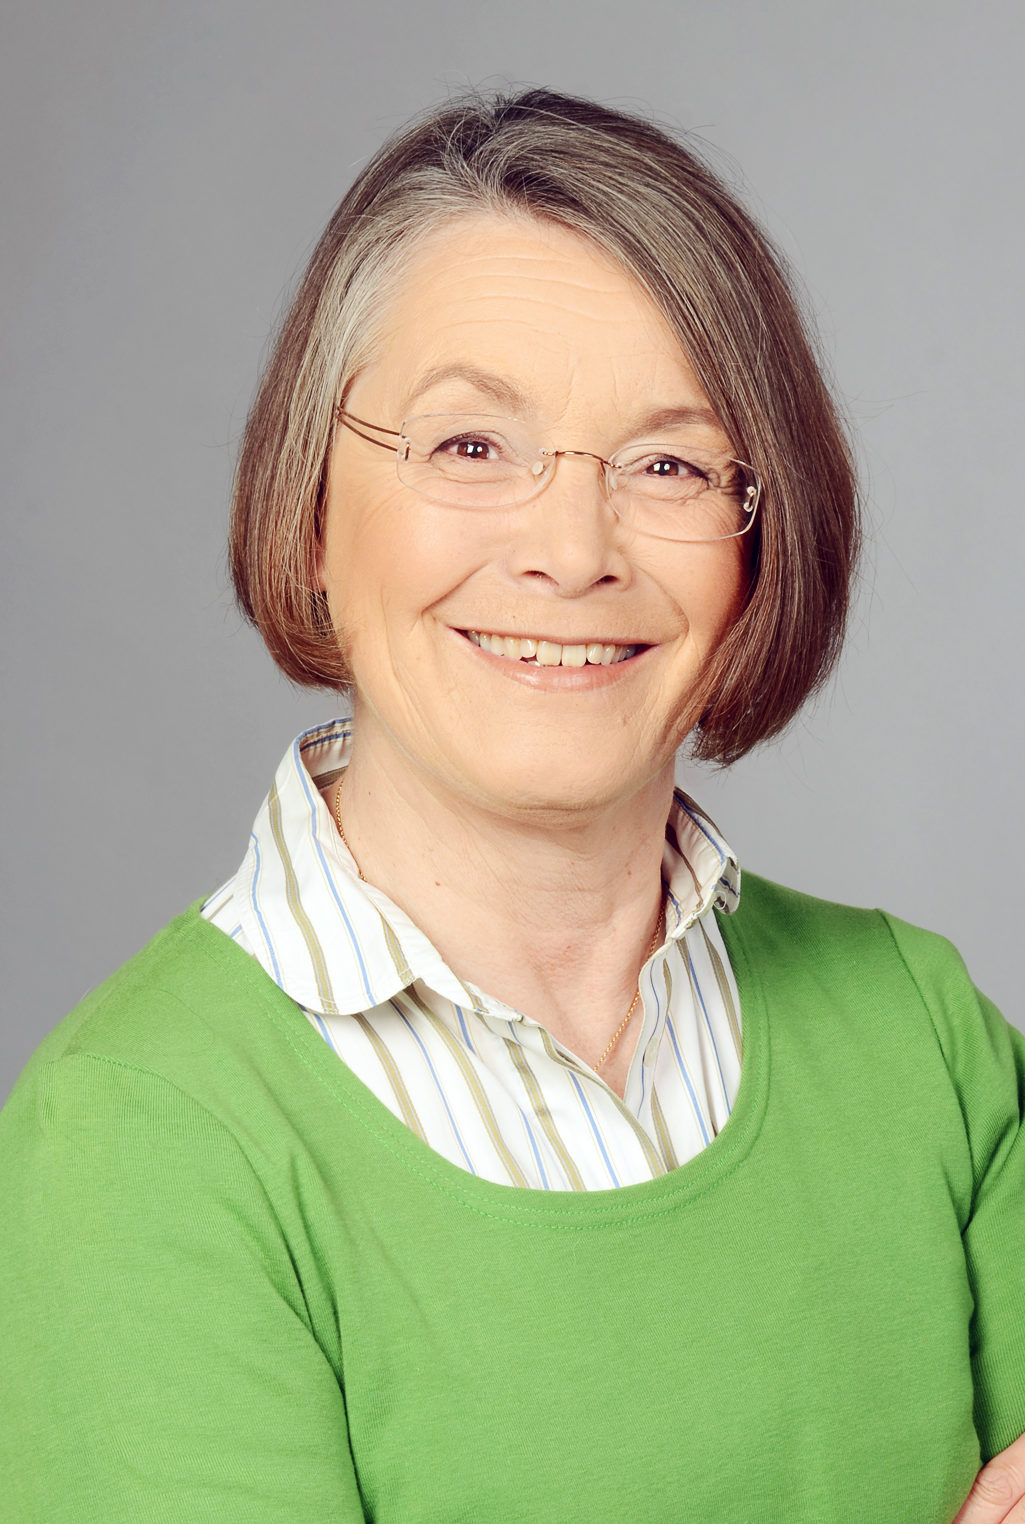 Margret Osterfeld